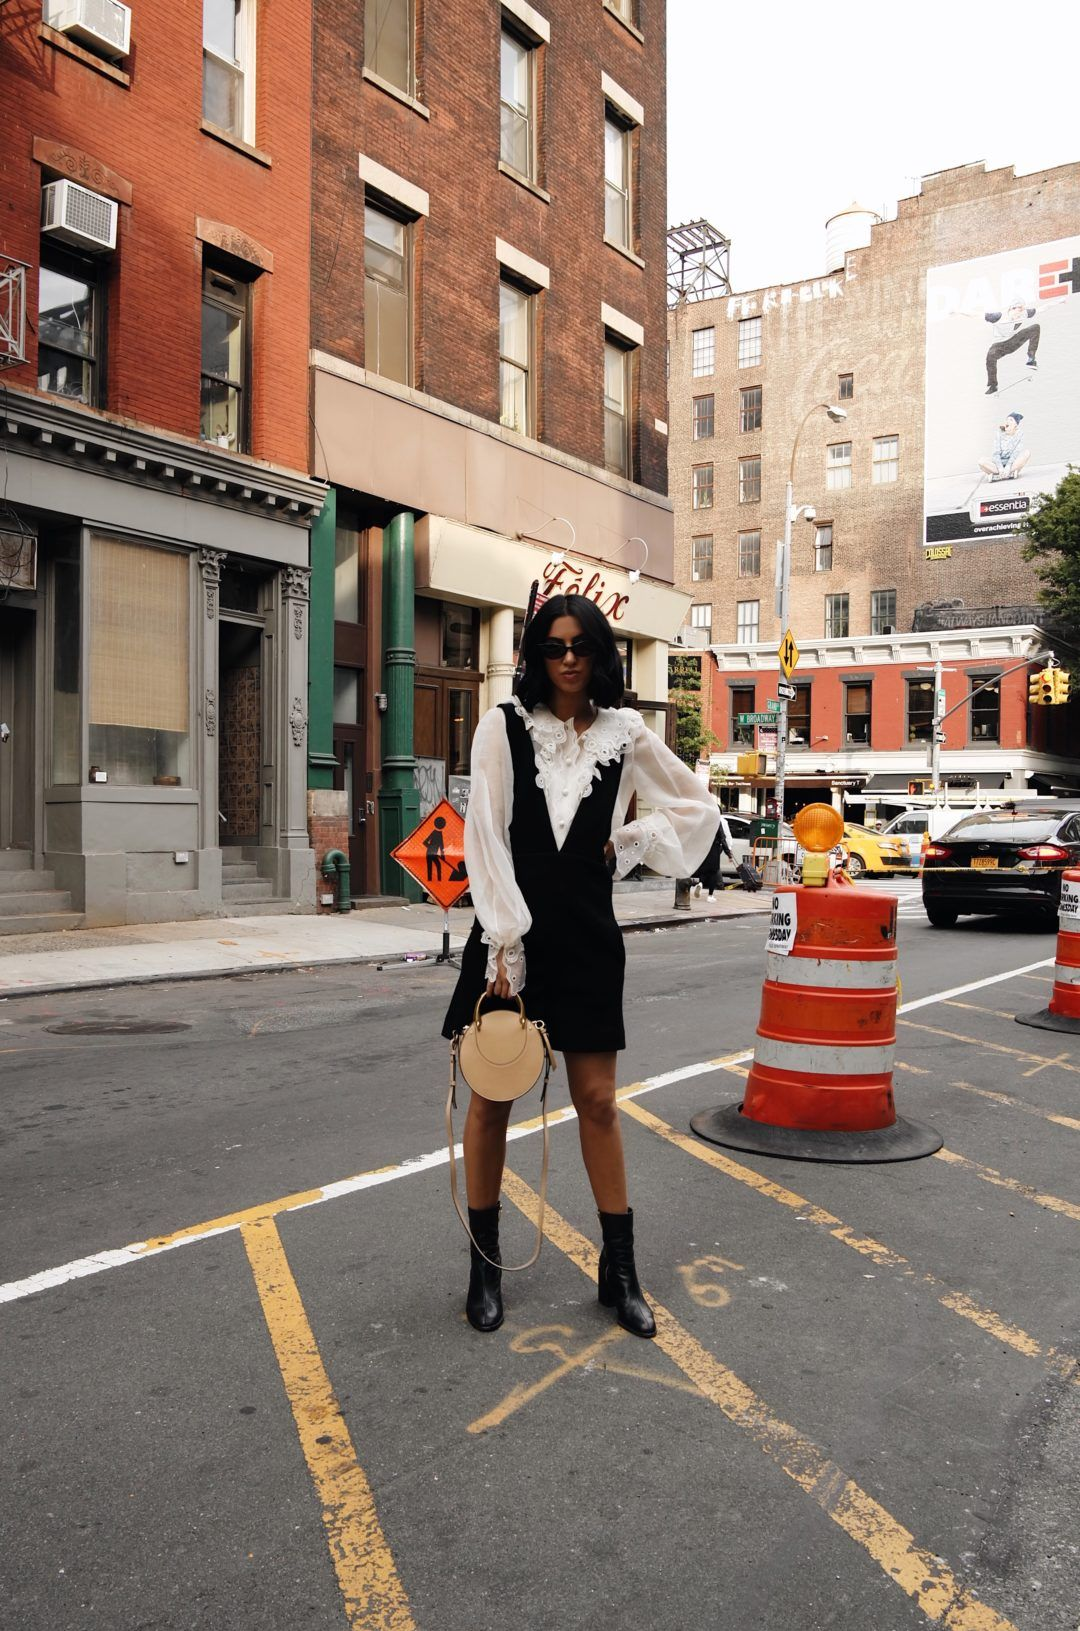 dfb701ba1e99 LA Blogger Tania Sarin in New York for NYFW wearing Chloe ruffle top and  sunglasses featuring Dear Frances boots.